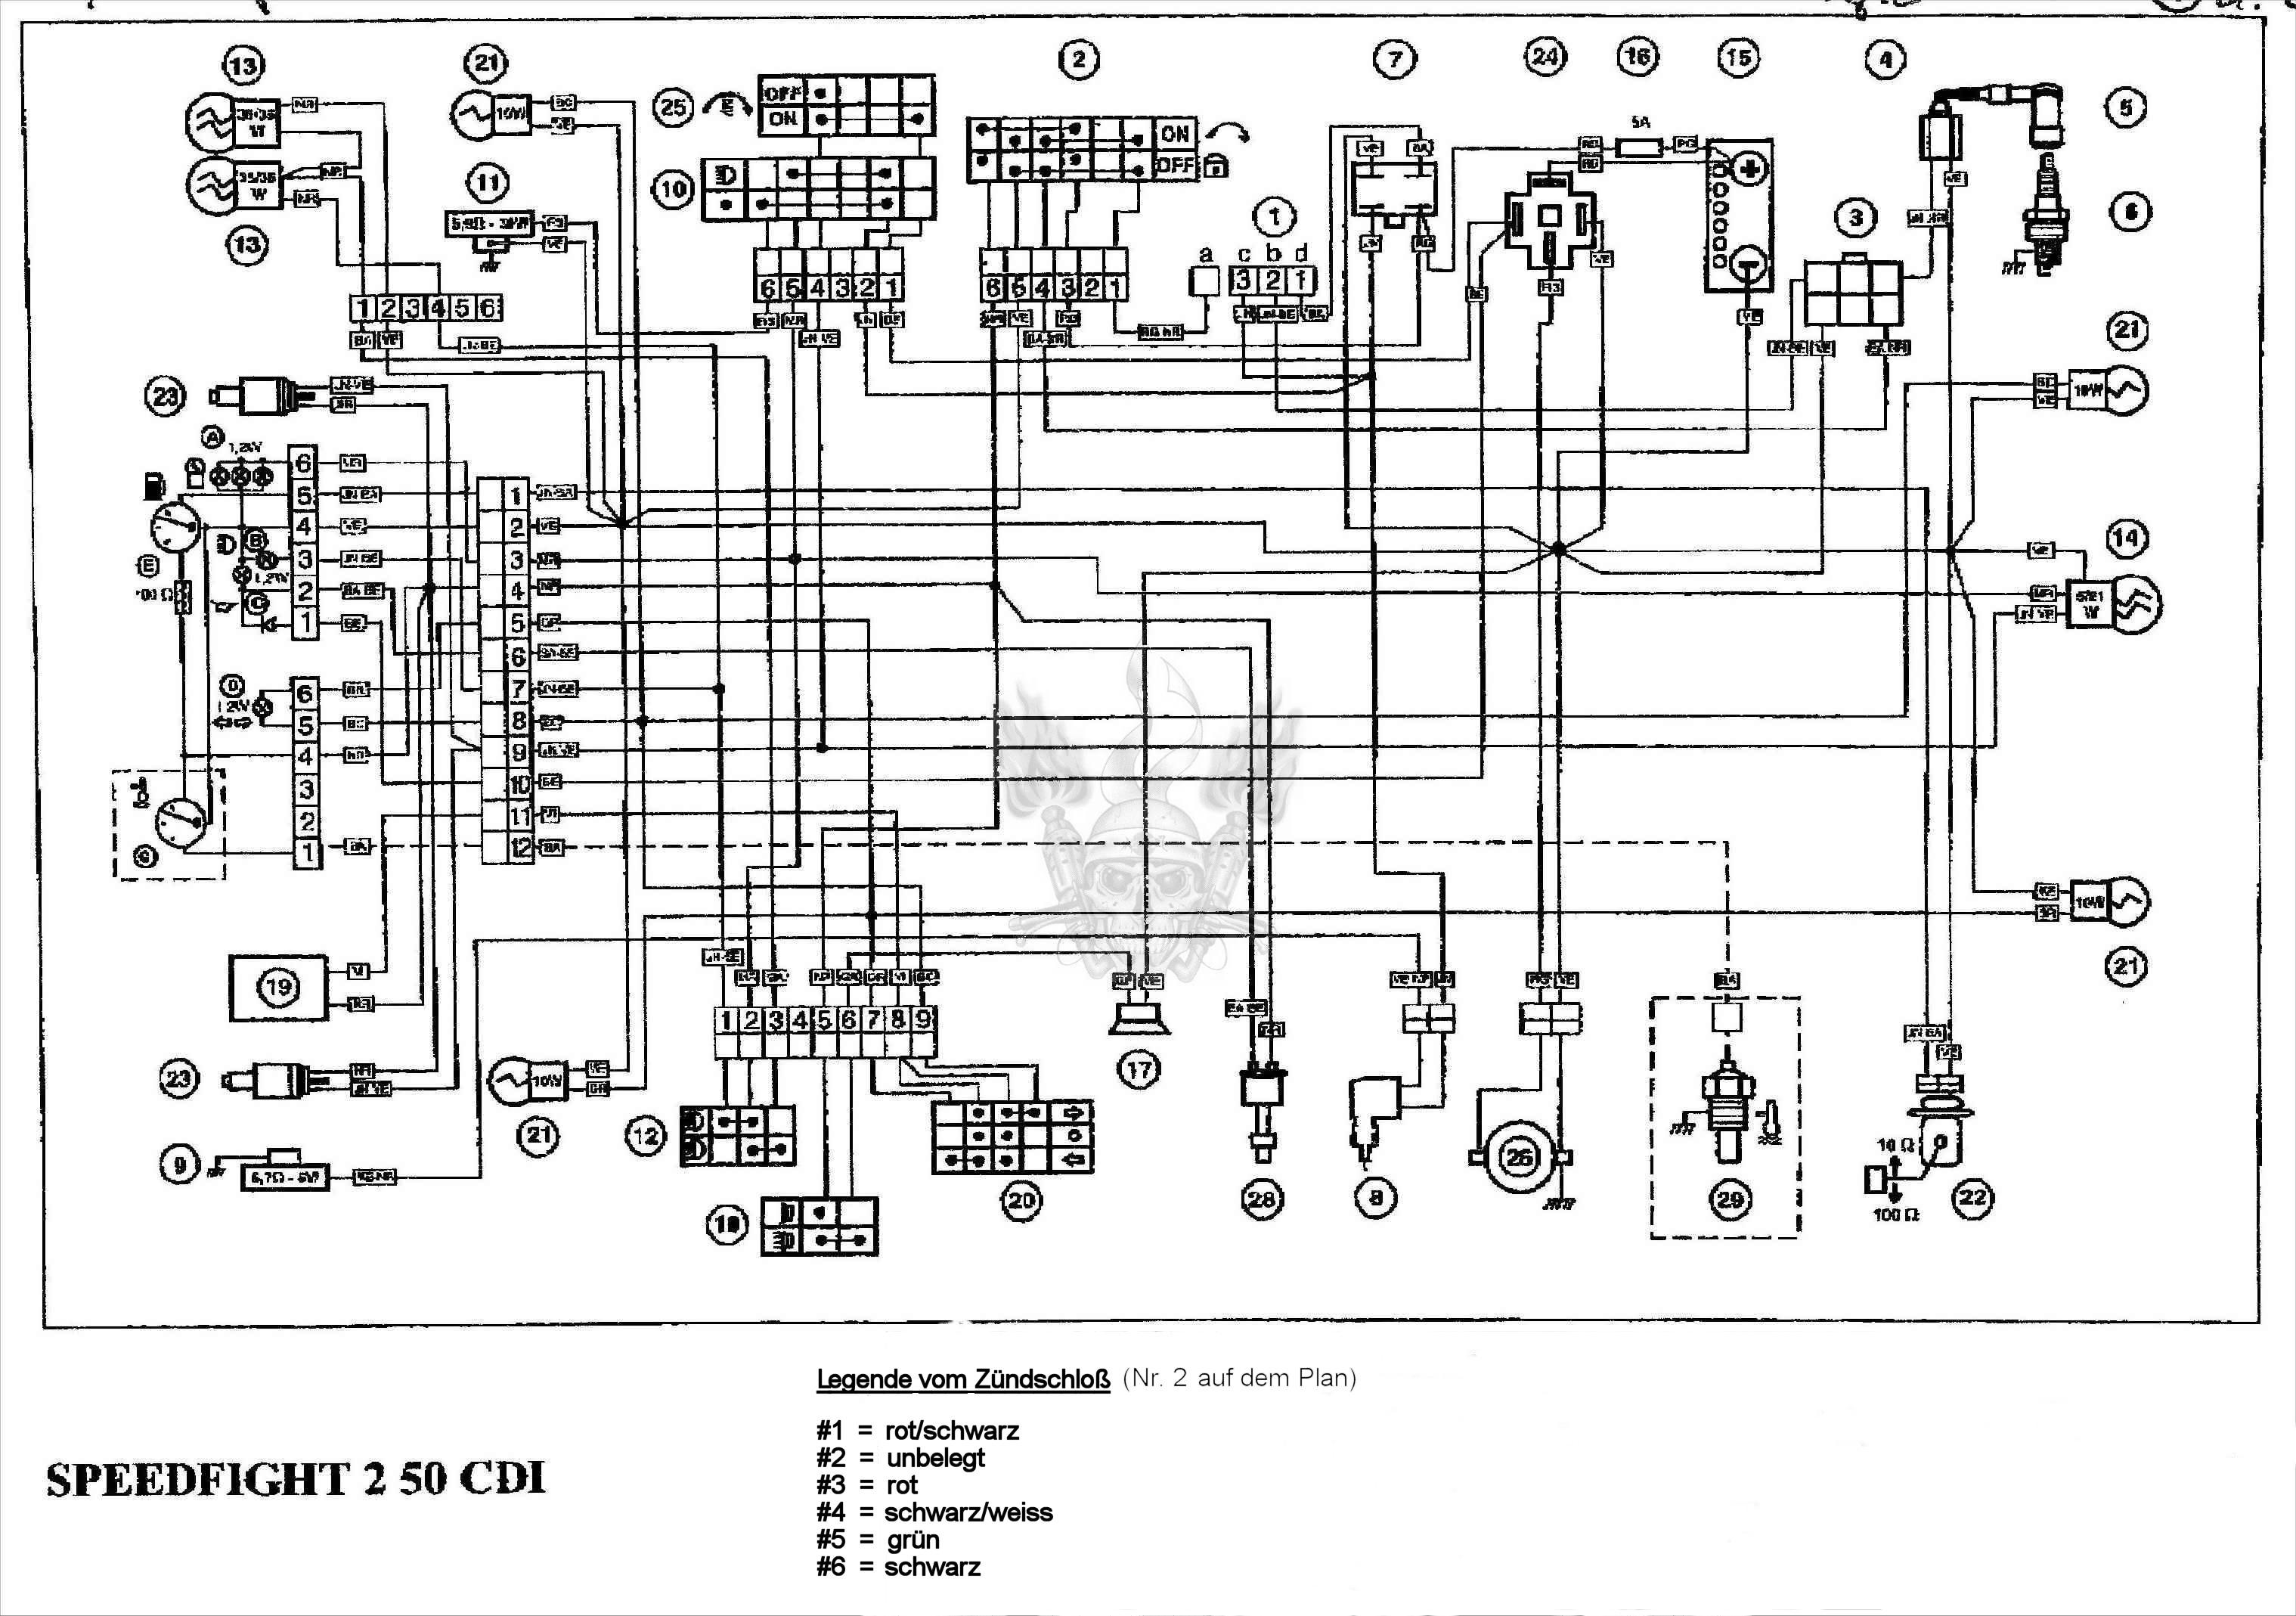 Peugeot Motorcycle Manuals Pdf Wiring Diagrams Fault Codes Manual Washing Machine Diagram Scooter Download Moto Schem Speedfight 2